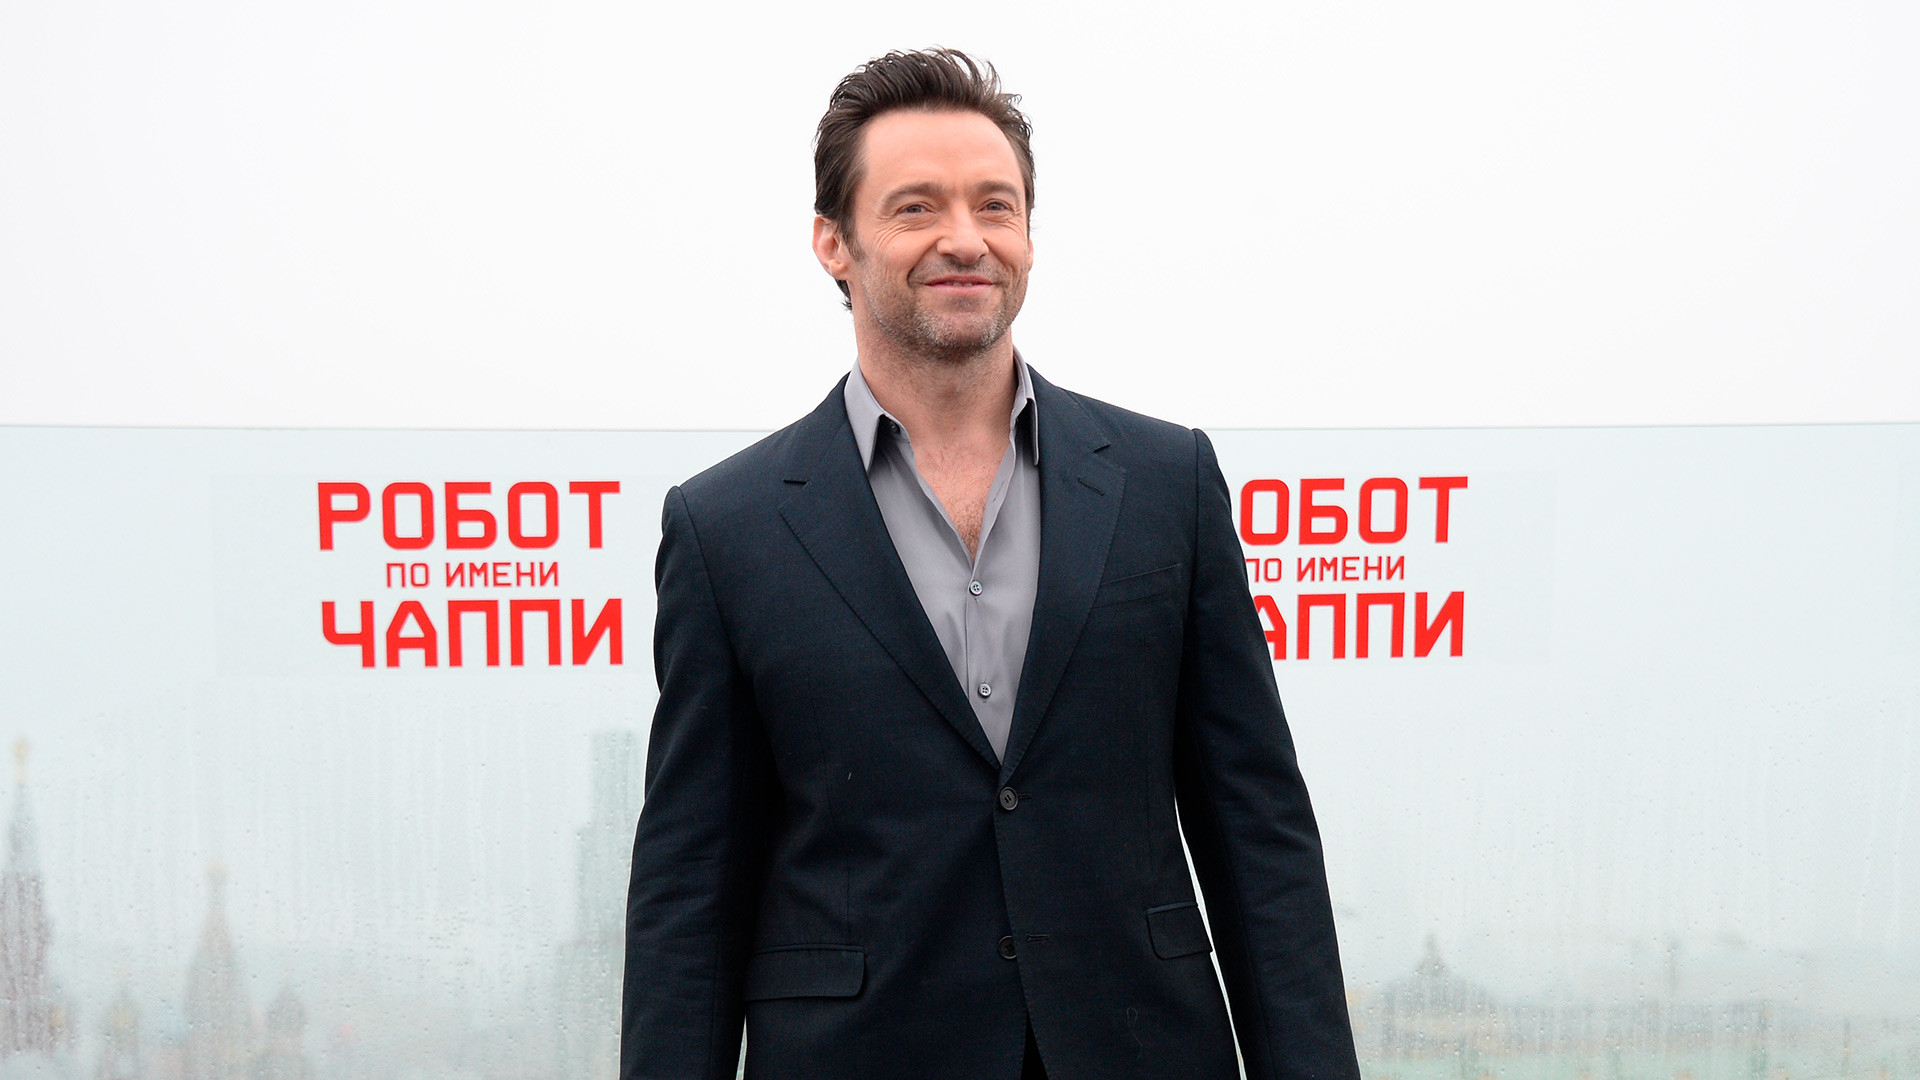 Hugh Jackman at Ritz-Carlton Hotel in Moscow.